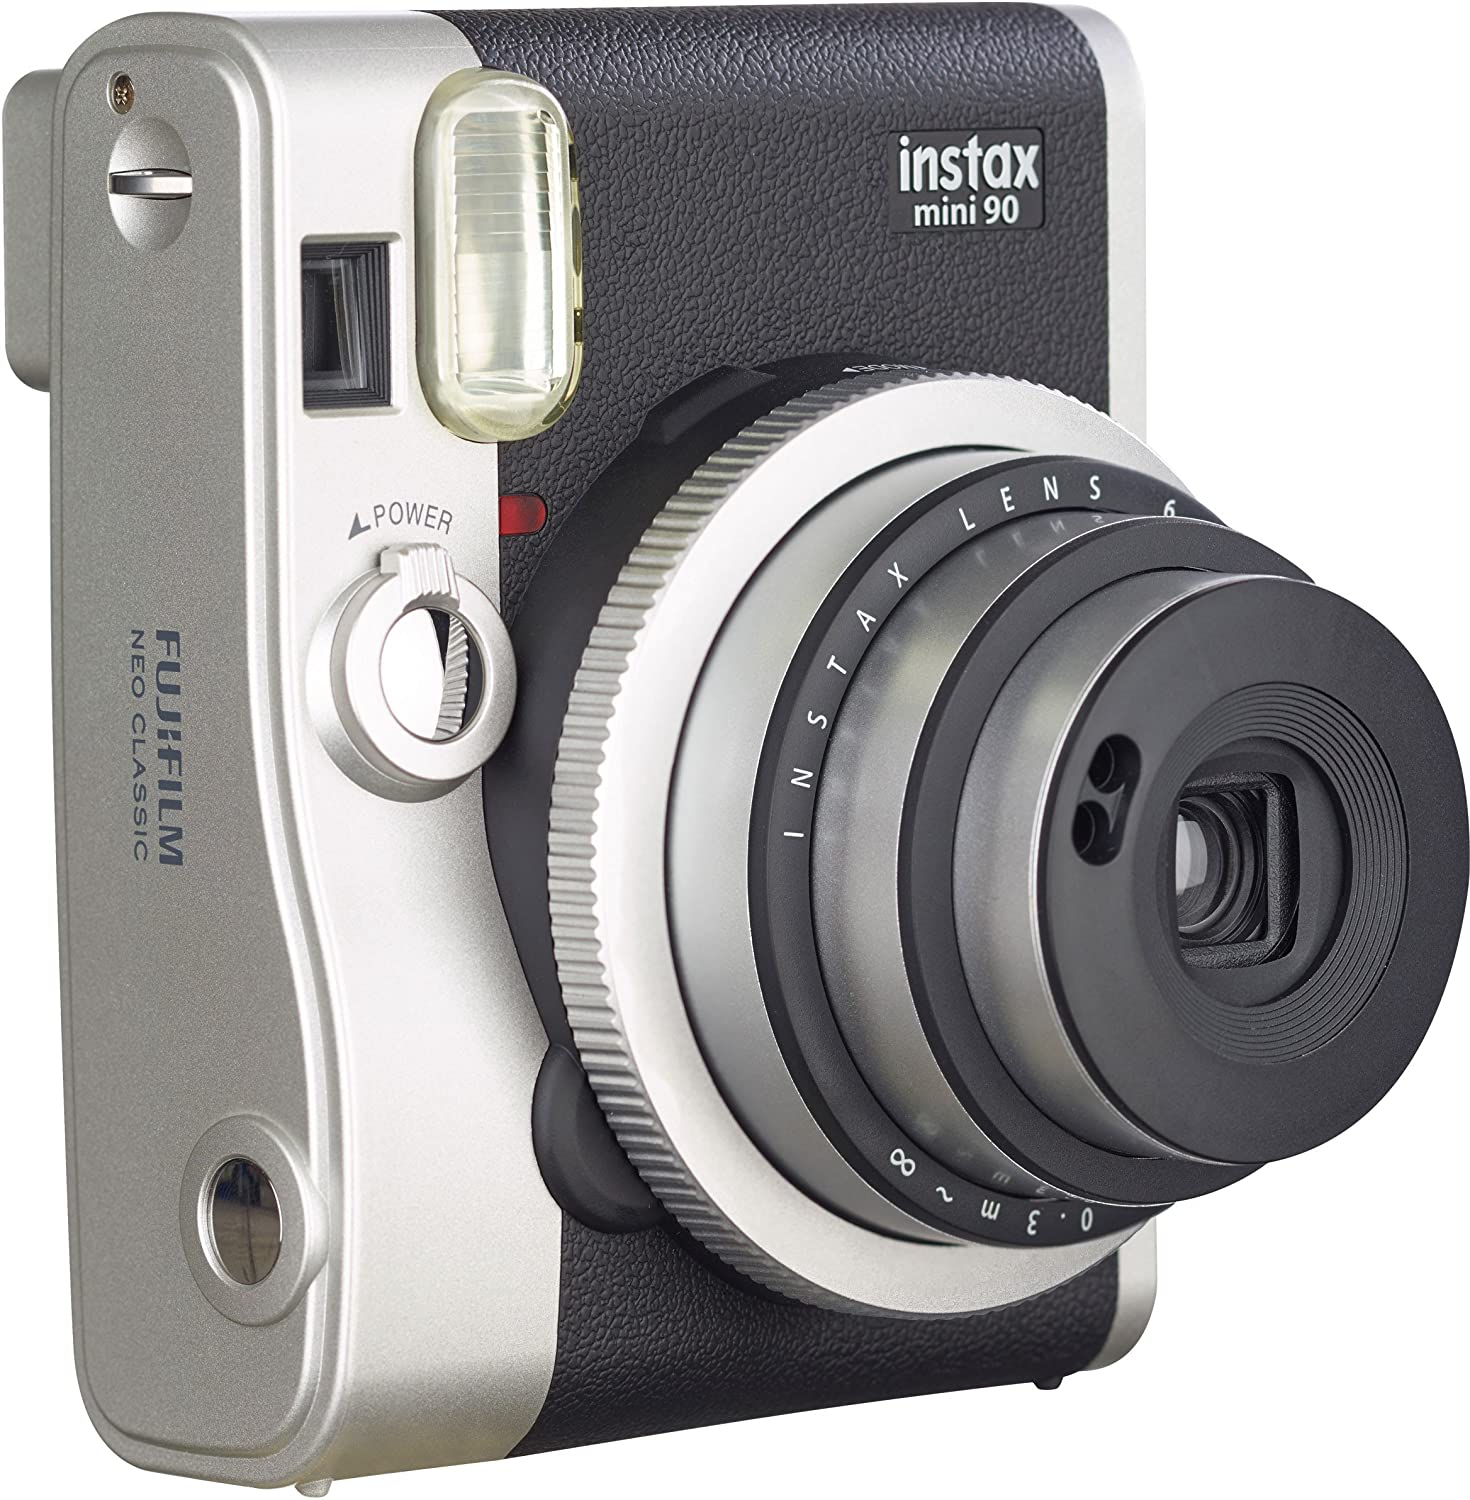 Fujifilm Instax Mini 90 Neo Black Friday Deals 2019